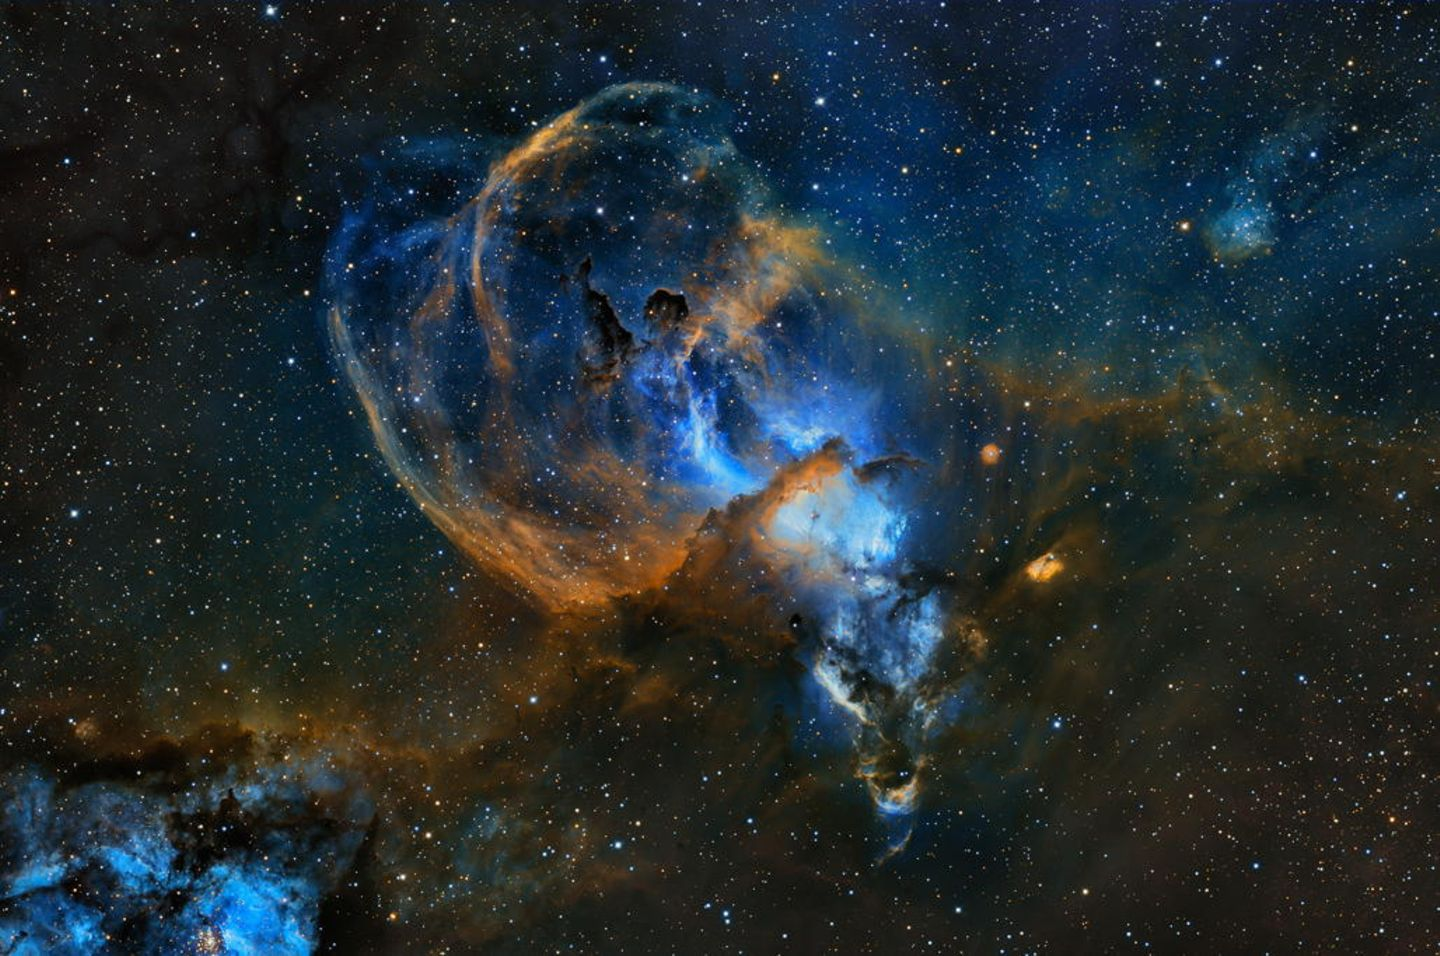 Astronomy Photographer of the Year Award